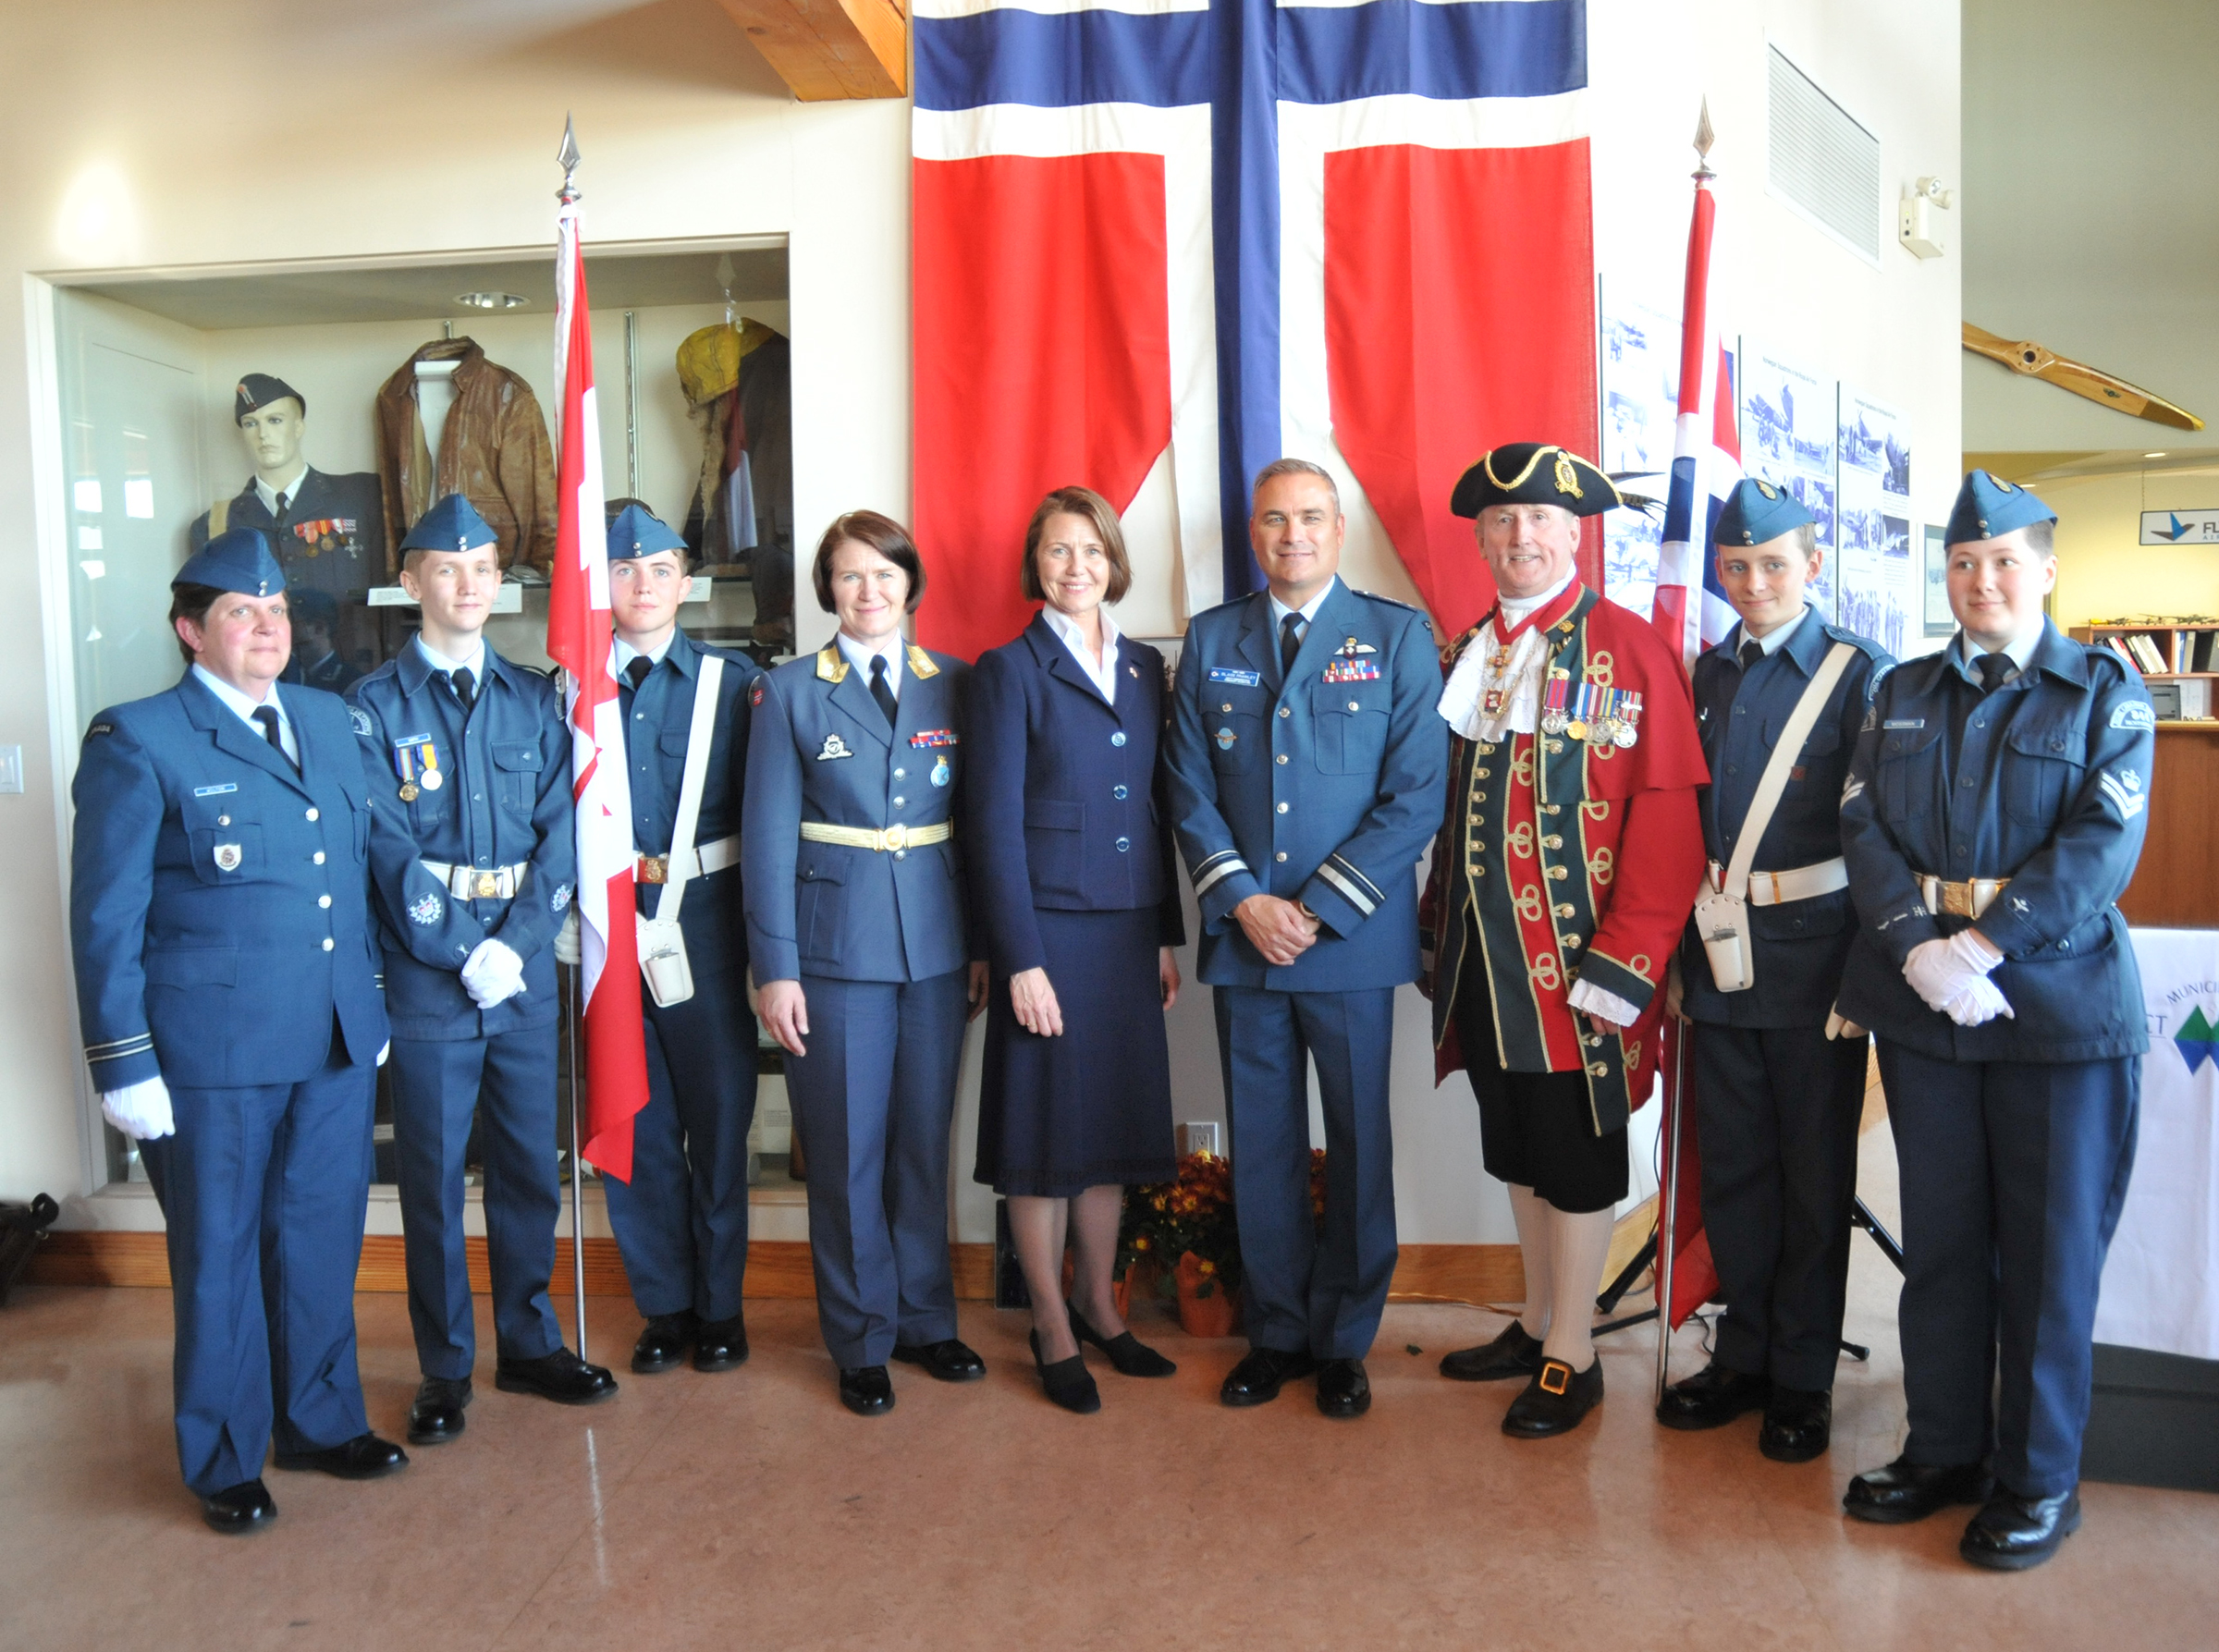 On October 11, 2019, (from left) Captain Patricia Wilton; Warrant Officer Second Class Harper Smith and Flight Sergeant Derek Rawn (bothmembers of the Royal Canadian Air Cadets); Major-General Tonje Skinnarland, chief of the Royal Norwegian Air Force; Norwegian ambassador Anne Kari H. Ovind; Major-General Blaise Frawley, deputy commander of the RCAF; town crier Bruce Kruger; as well as cadet Sergeant Carson Turney and cadet Flight Corporal Julia Mossman gather during a reception at Muskoka Airport to celebrate the Royal Norwegian Air Force's 75th anniversary. Attendees included. PHOTO: Lieutenant Nora Amrane